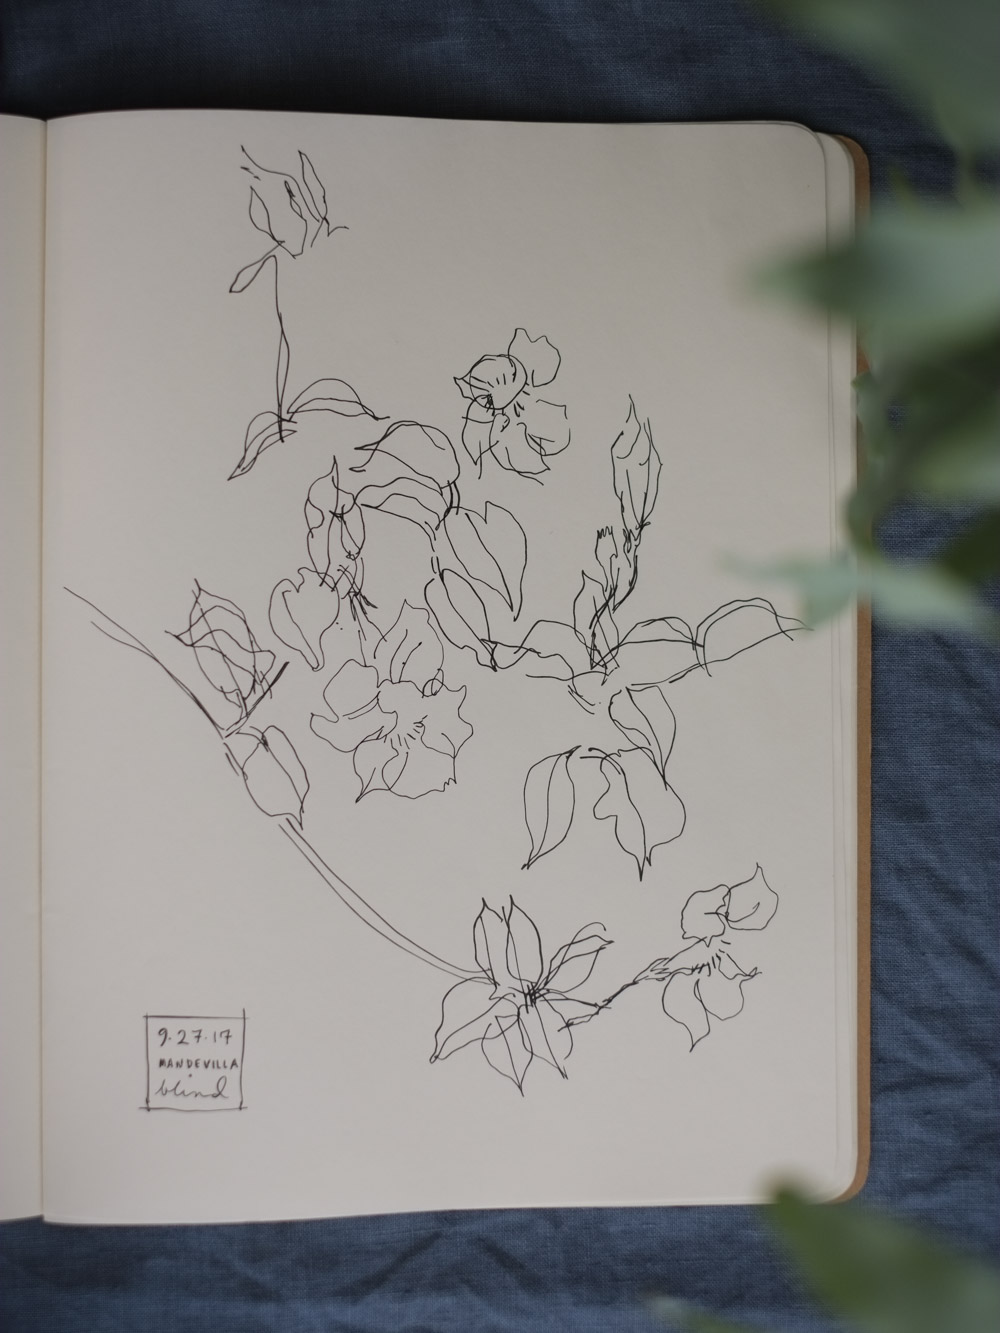 Erin_Ellis_daily_botanical_blind_drawings_sept_2017.jpg-31.jpg